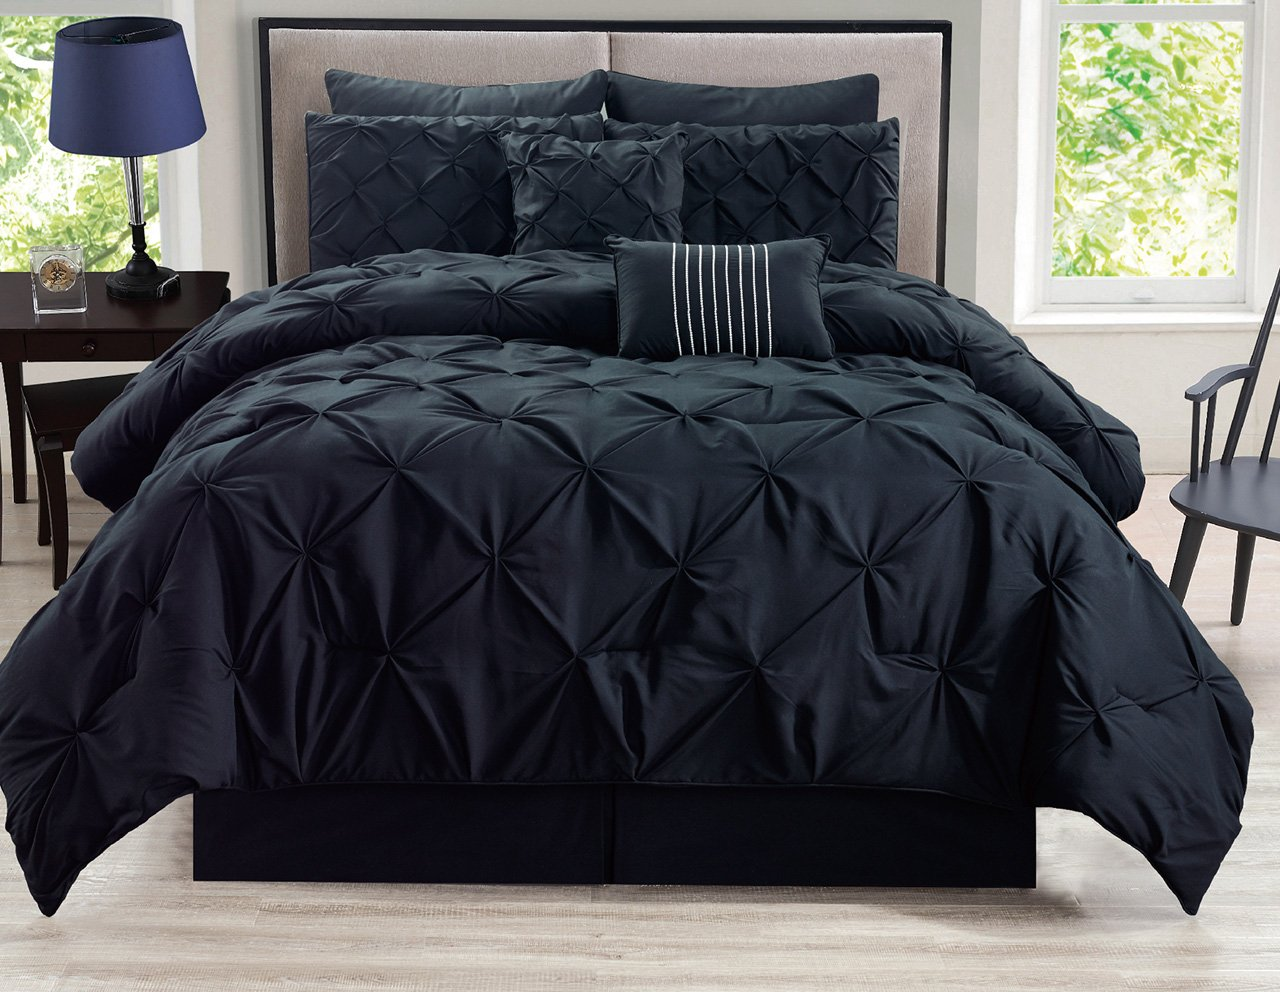 KingLinen 8 Piece Rochelle Pinched Pleat Black Comforter Set Queen - 8-Piece comforter set includes 1 comforter, 2 shams, 2 euro shams, 1 bedskirt, 1 breakfast cushion, 1 square cushion Comforter 90-inch by 92-inch, shams 20-inch by 26-inch, euro shams 26-inch by 26-inch, bedskirt 60-inch by 80-inch+15-inch, breakfast cushion 12-inch by 18-inch, square cushion 18-inch by 18-inch Comforter set fabric content: 100-percent polyester - comforter-sets, bedroom-sheets-comforters, bedroom - 71myCgp%2Bg%2BL -